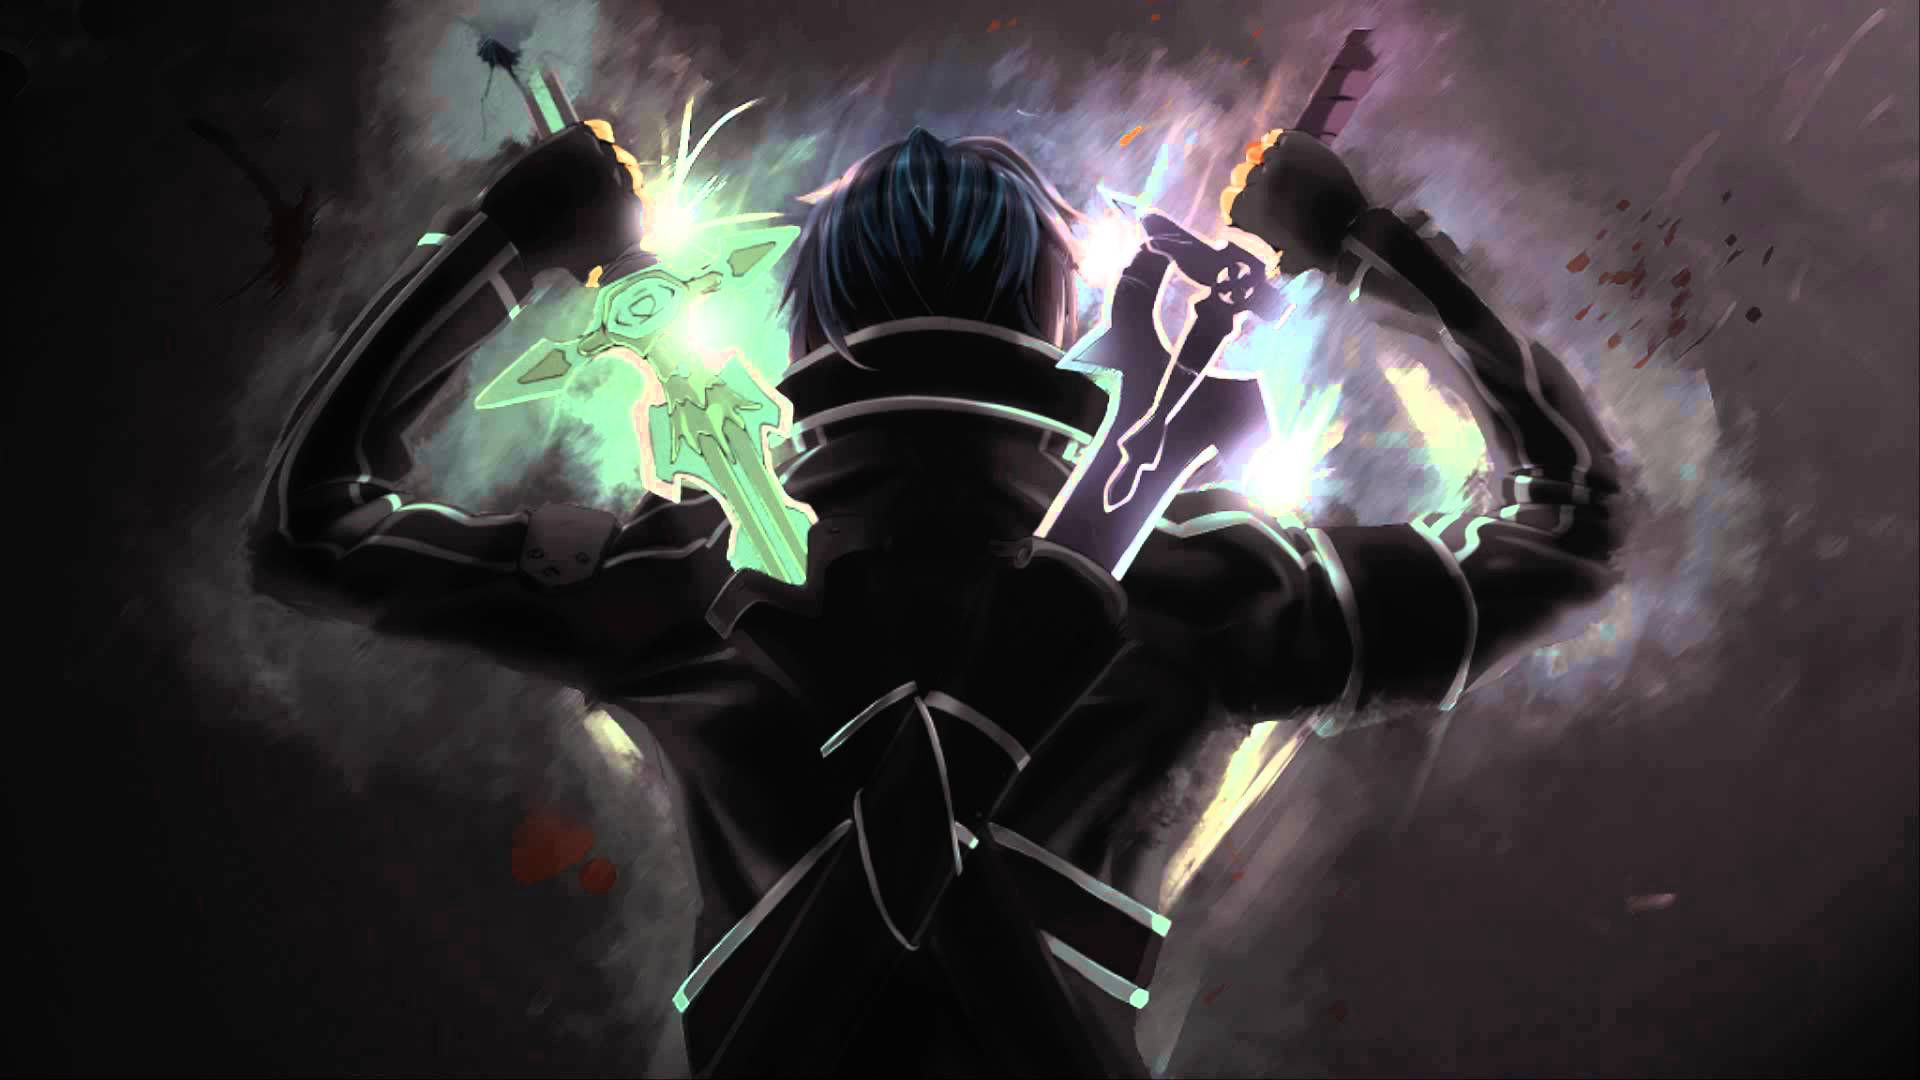 Epic Anime Fighting Wallpapers Images Wallpaper Arunnath Most Clipart ClipartFest